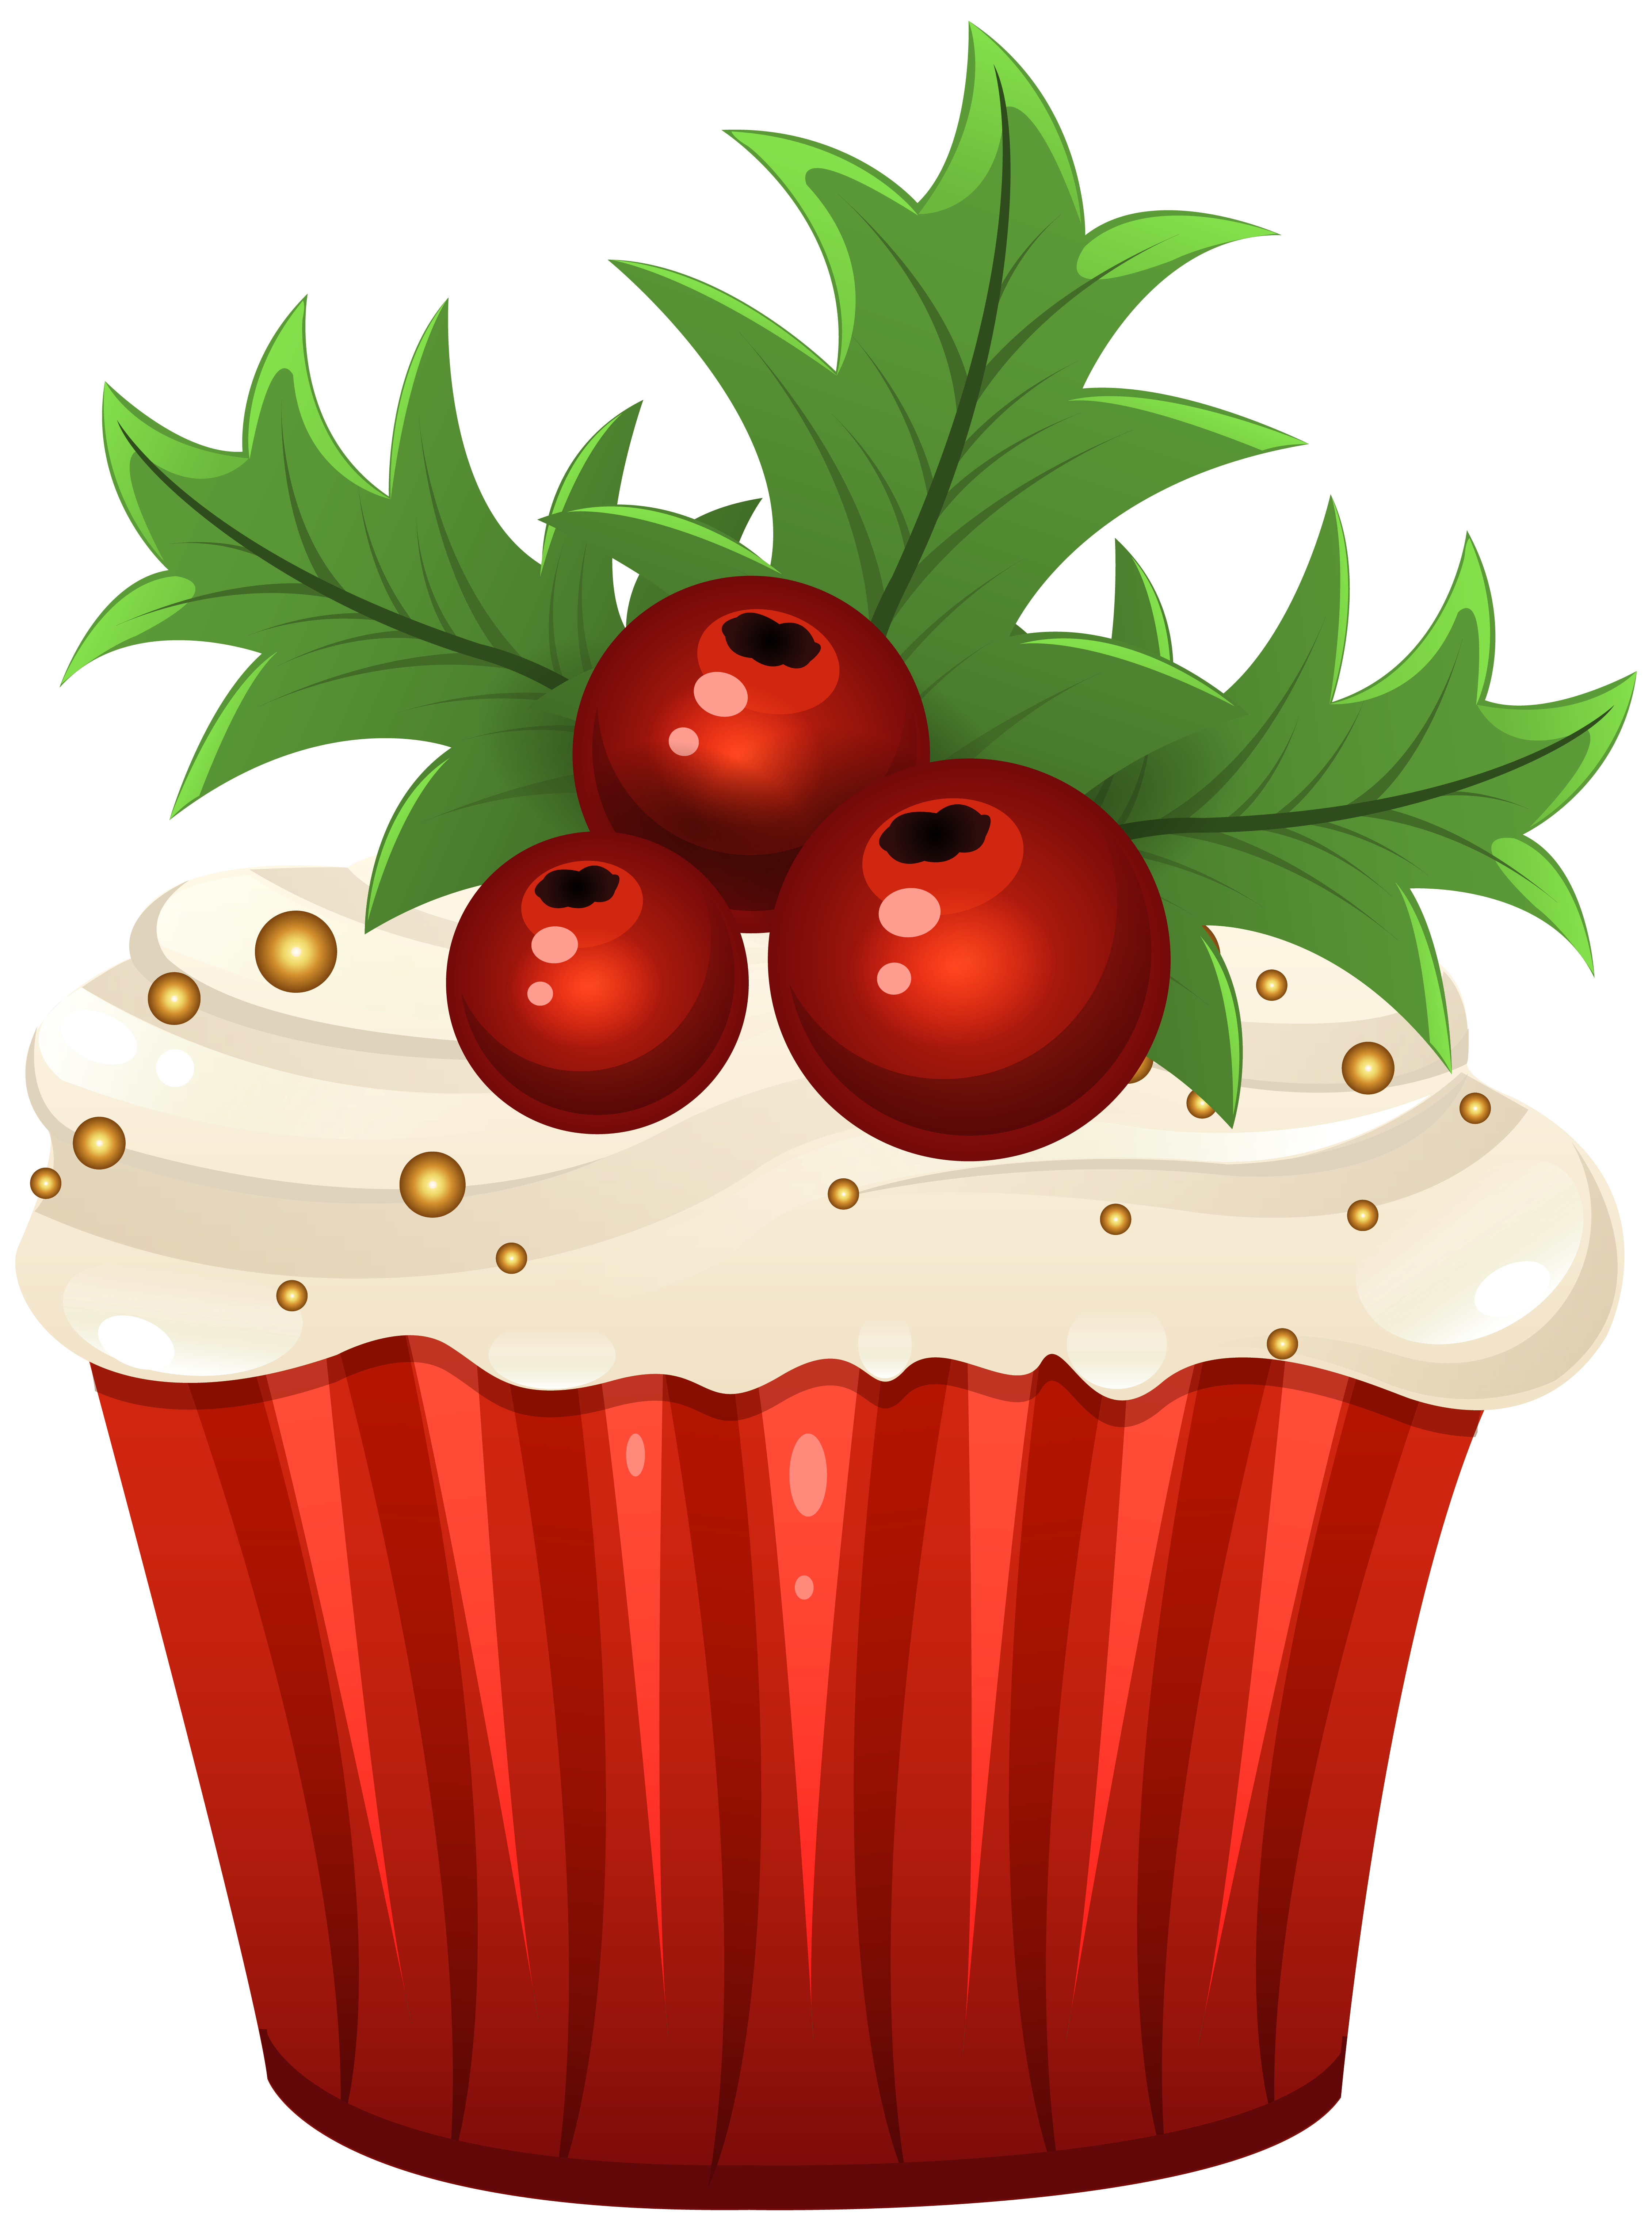 Muffins clipart new year. Christmas muffin png clip